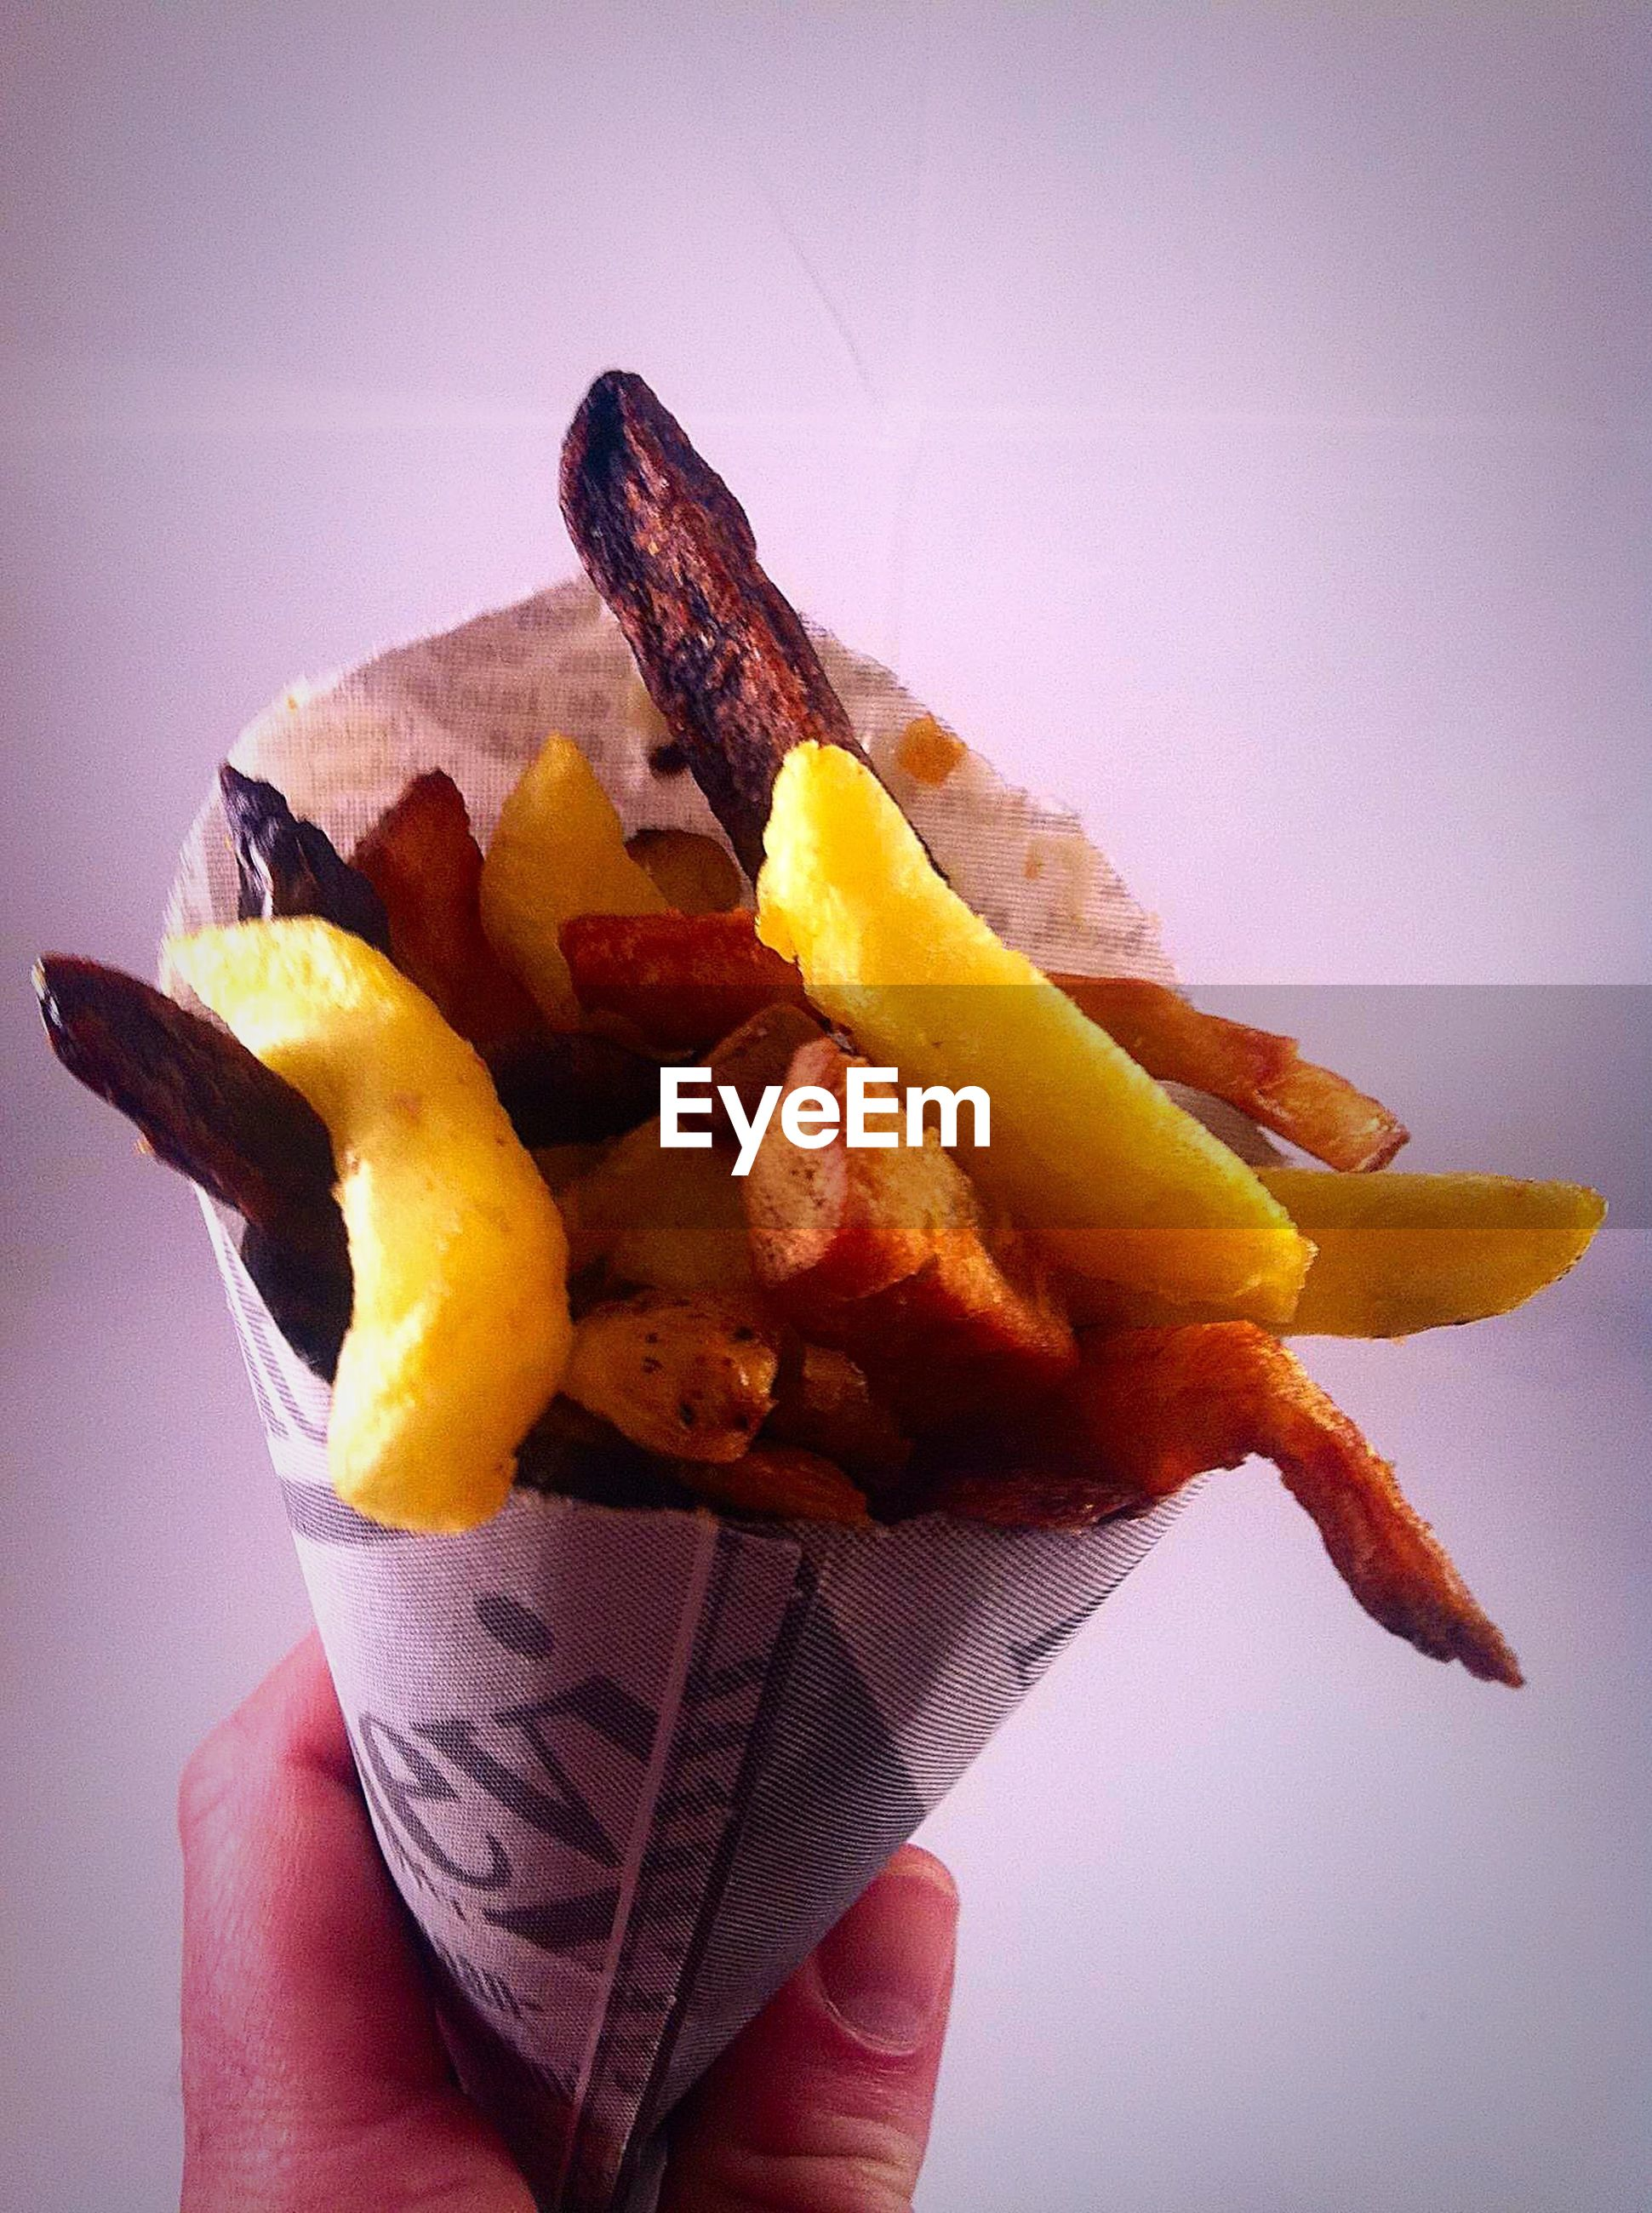 food and drink, food, holding, freshness, person, healthy eating, fruit, cropped, part of, yellow, close-up, banana, human finger, unrecognizable person, slice, ready-to-eat, indoors